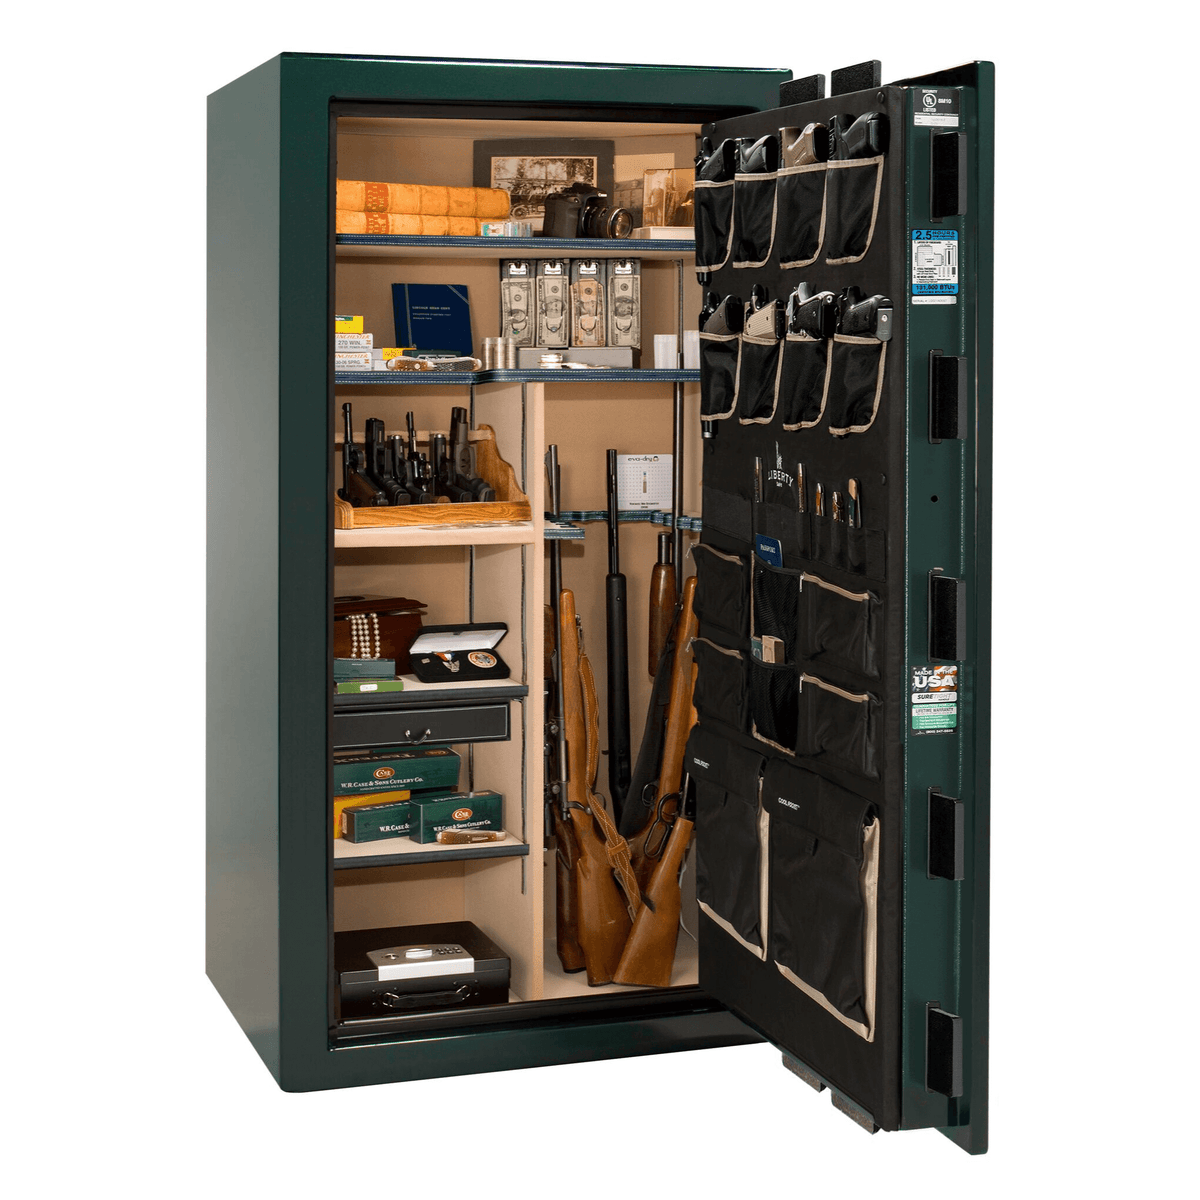 "Magnum | 40 | Level 8 Security | 150 Minute Fire Protection | Green Gloss | Brass Electronic Lock | 65.5""(H) x 36""(W) x 32""(D)"